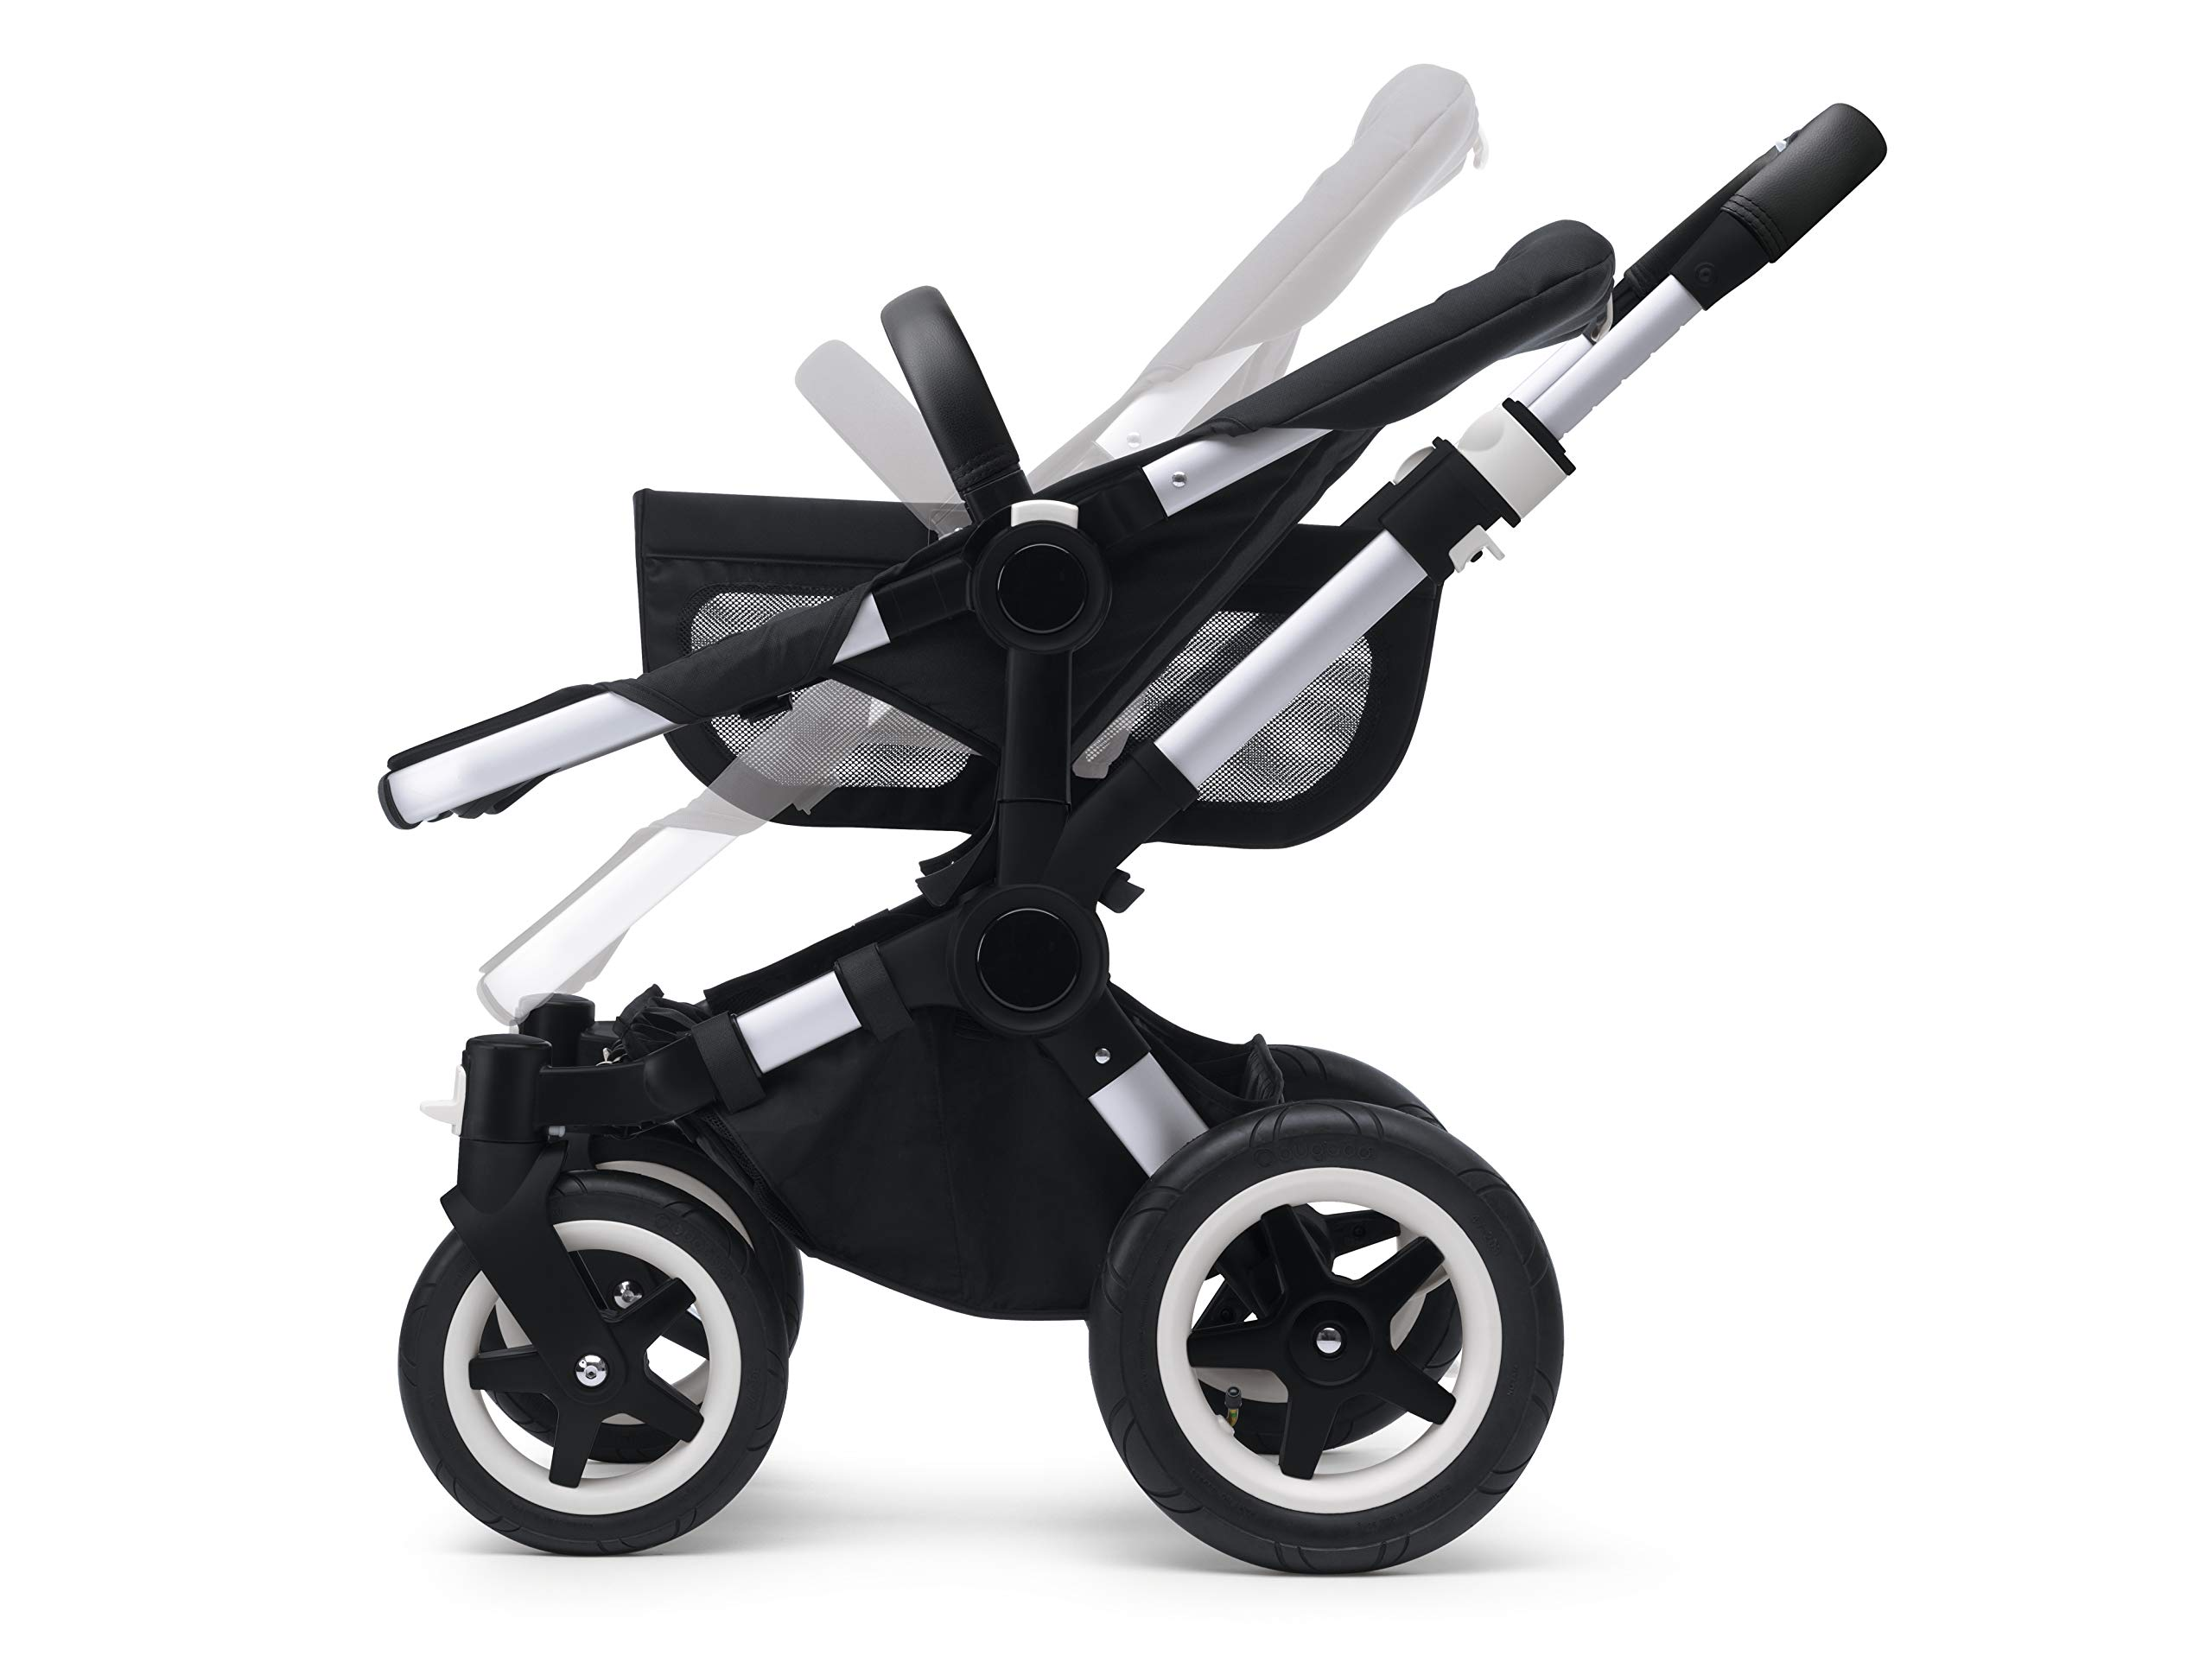 Bugaboo Donkey 2 Mono, 2 In 1 Pram and Pushchair, Extends Into Double Stroller, Black/Soft Pink Bugaboo The name donkey says it all; it's the bugaboo pushchair with the most storage space The bugaboo donkey2 mono can be easily extended to create even more space in the expandable side luggage basket & underseat basket Use extension sets to convert the bugaboo donkey2 mono into a duo or twin pushchair in just three clicks (extension sets sold separately) 7